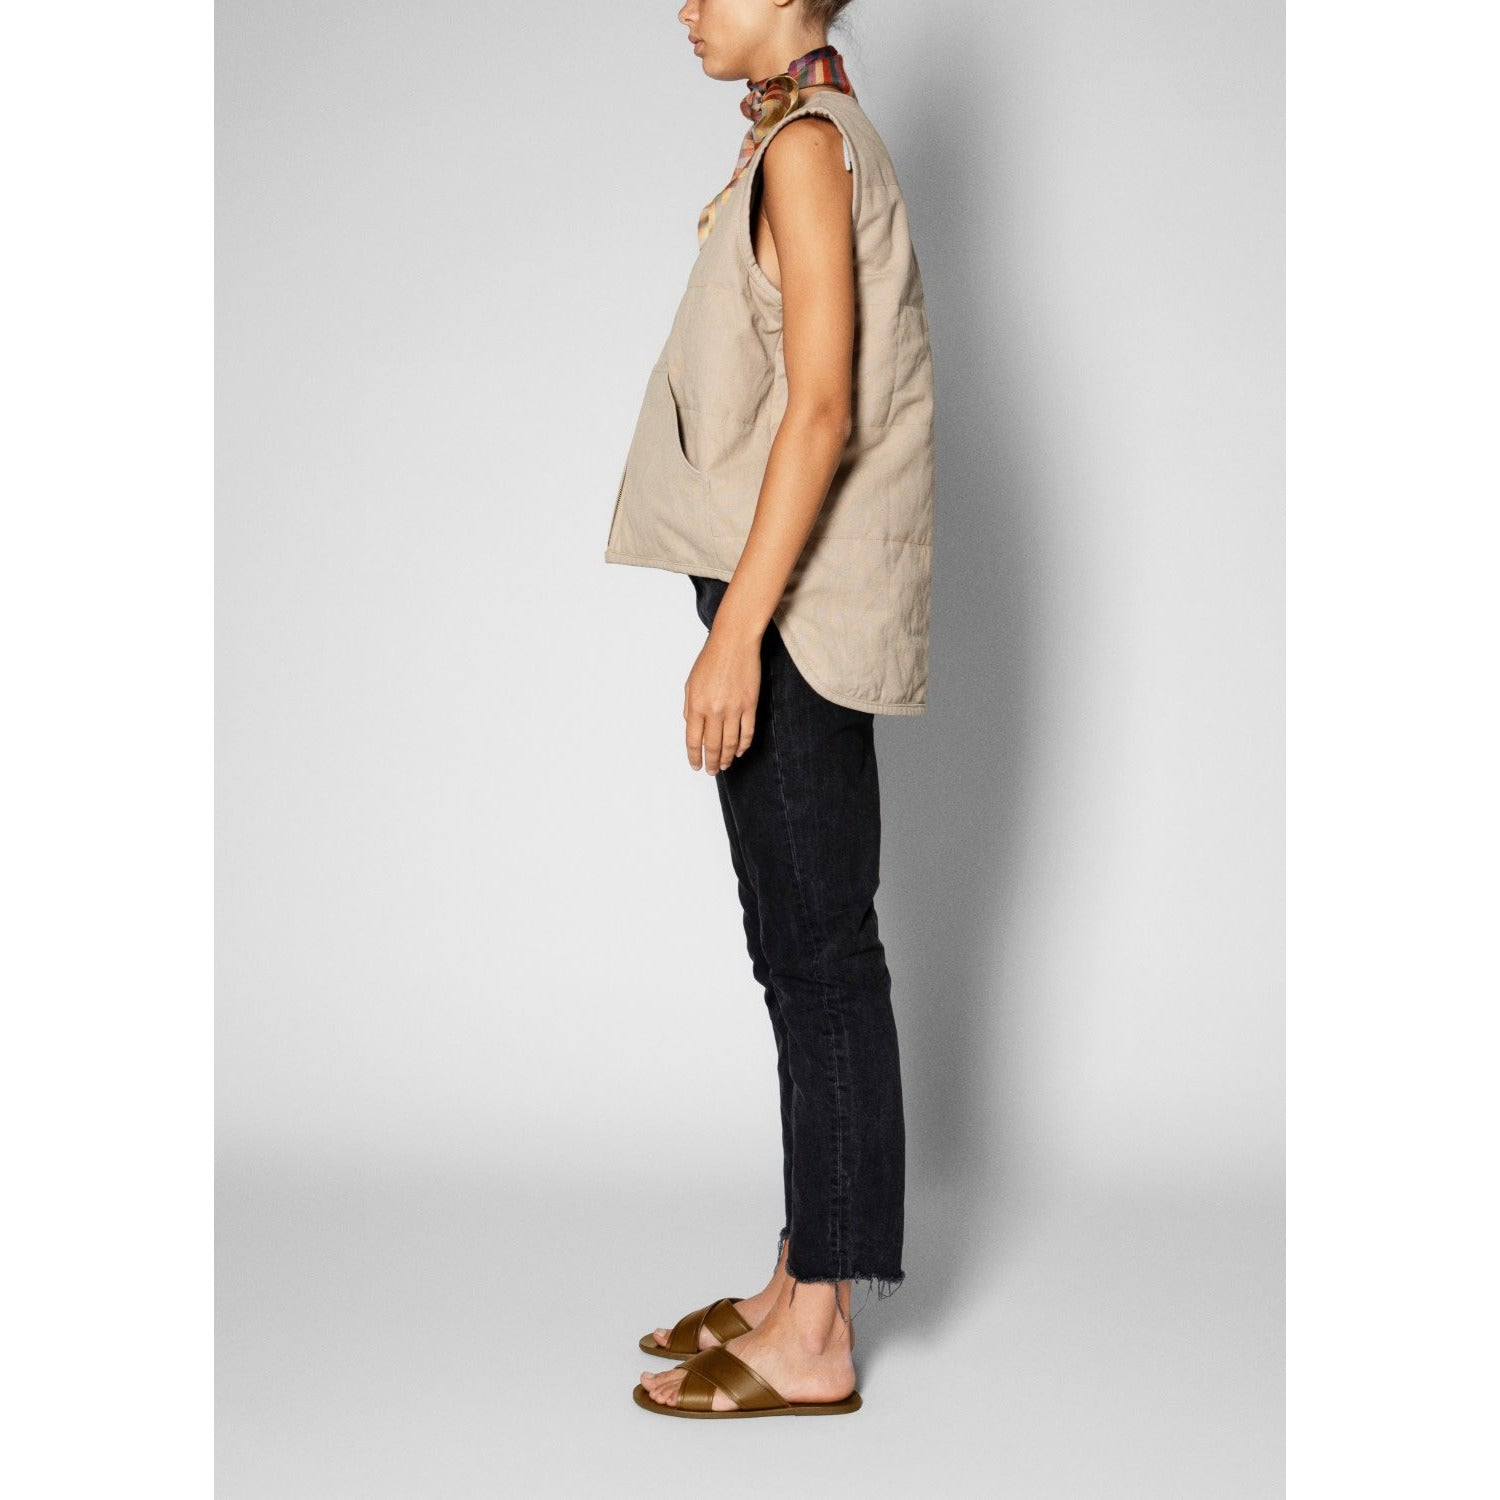 beige zip up vest worn with black pants and sandals